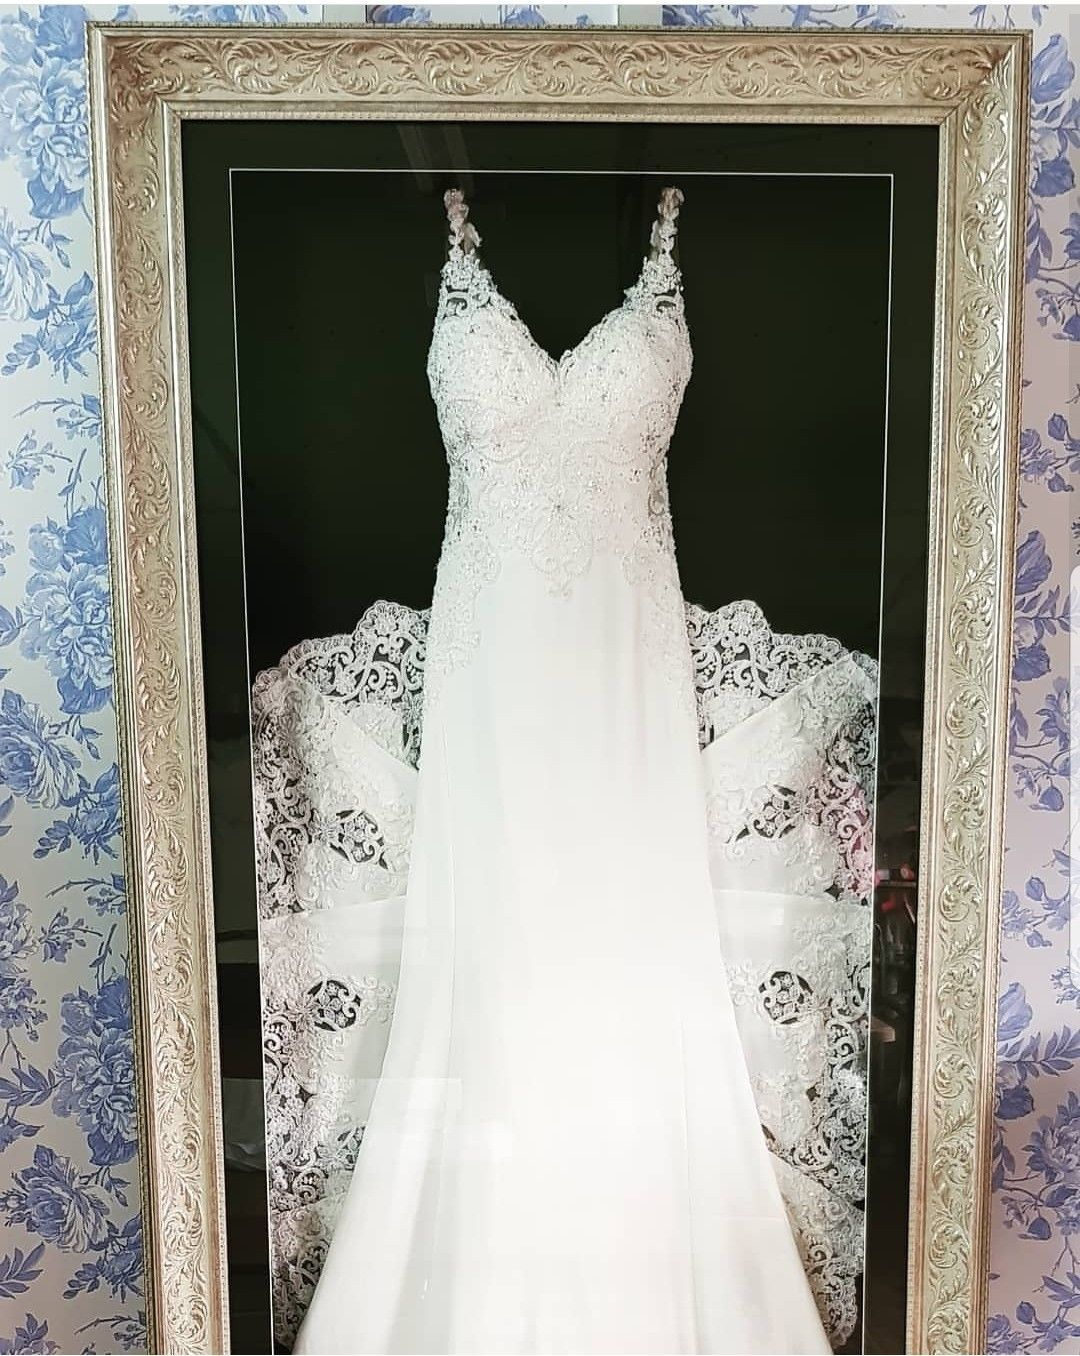 We Framed This Amazing Wedding Dress To Show That Outstanding Train To Its Maximum The Dress I In 2020 Wedding Dress Frame Wedding Dress Storage Wedding Dress Display